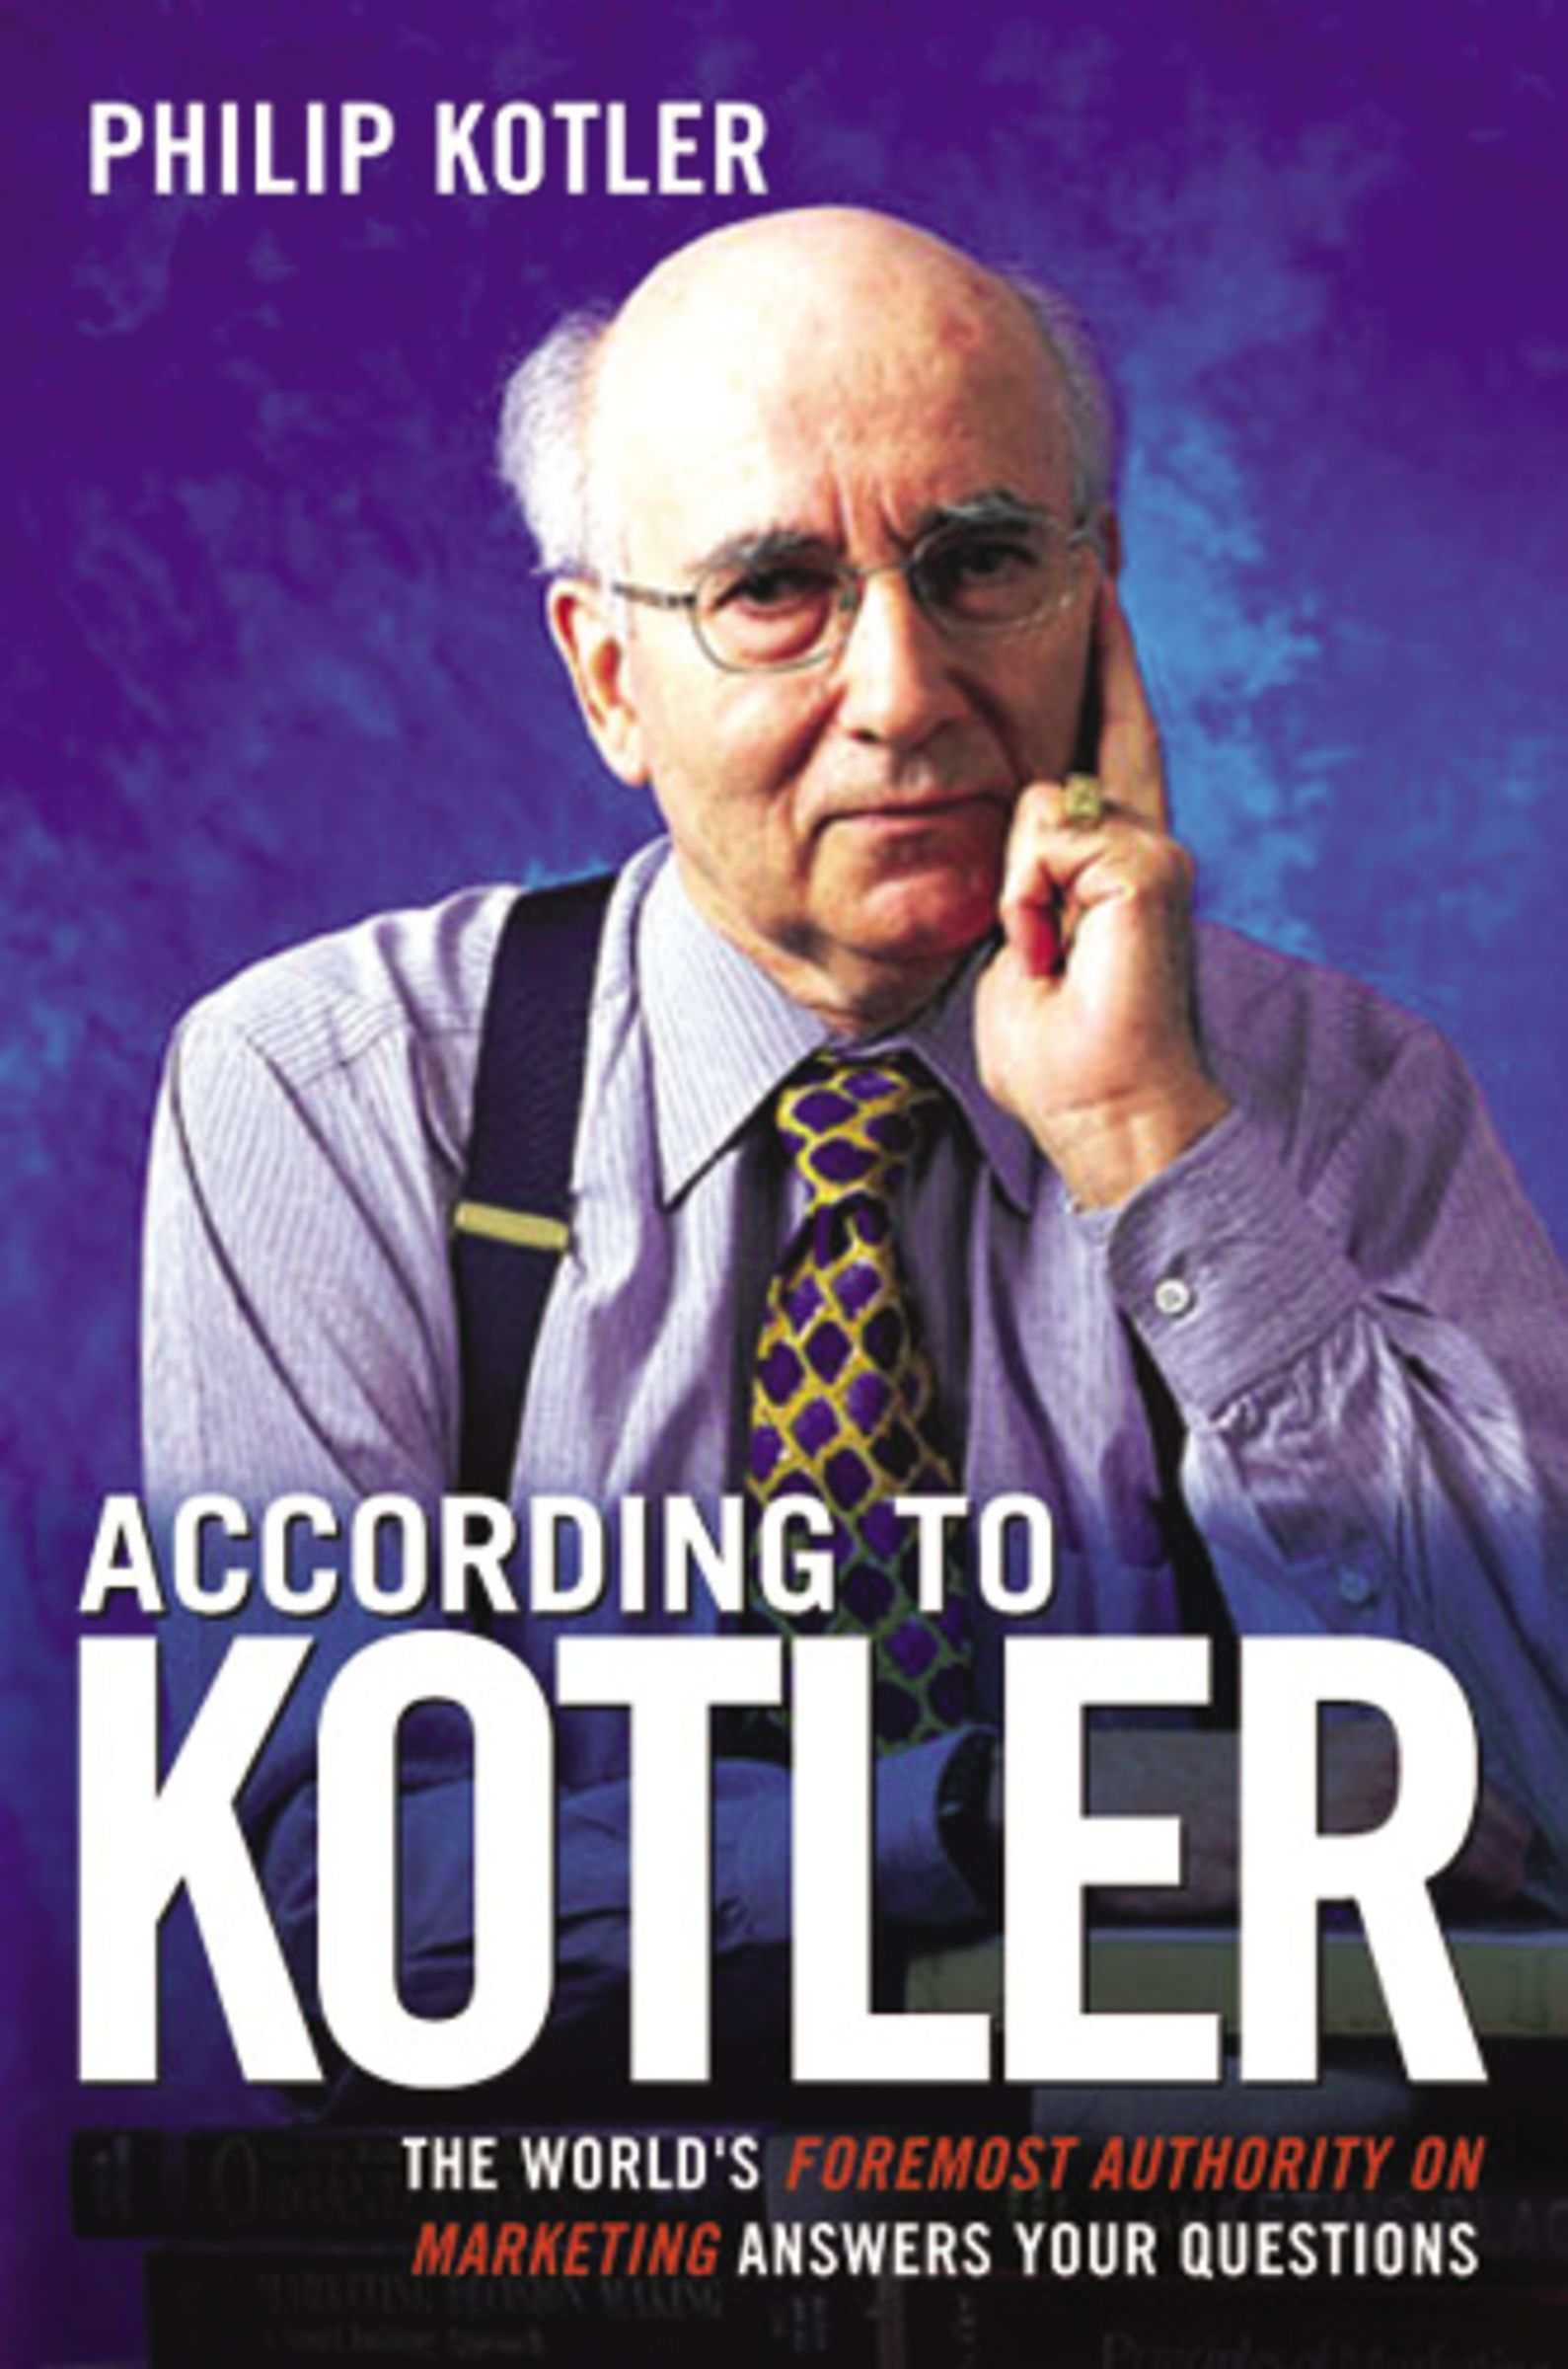 According to Kotler